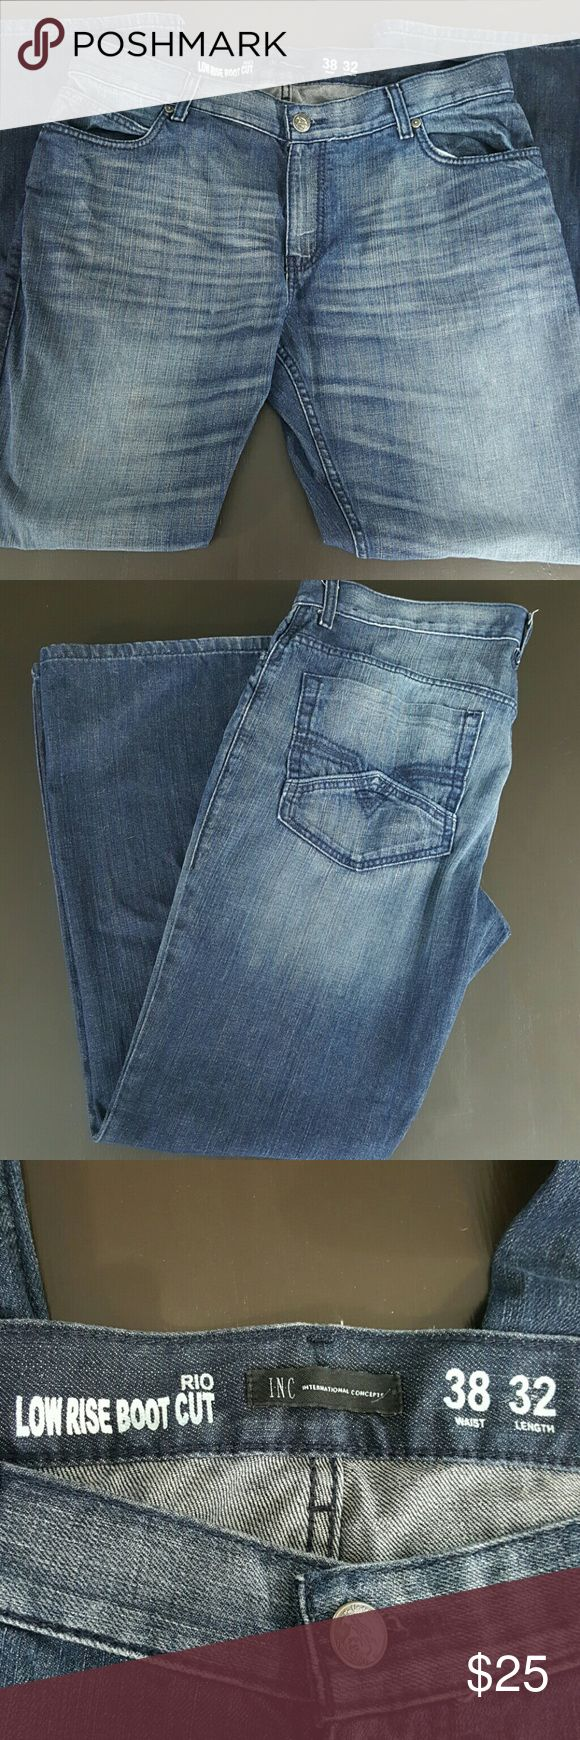 INC Rio Low Rise Boot Cut Jeans 38x32 Inc Rio Low Rise Boot Cut size 38x32 great condition INC International Concepts Jeans Bootcut